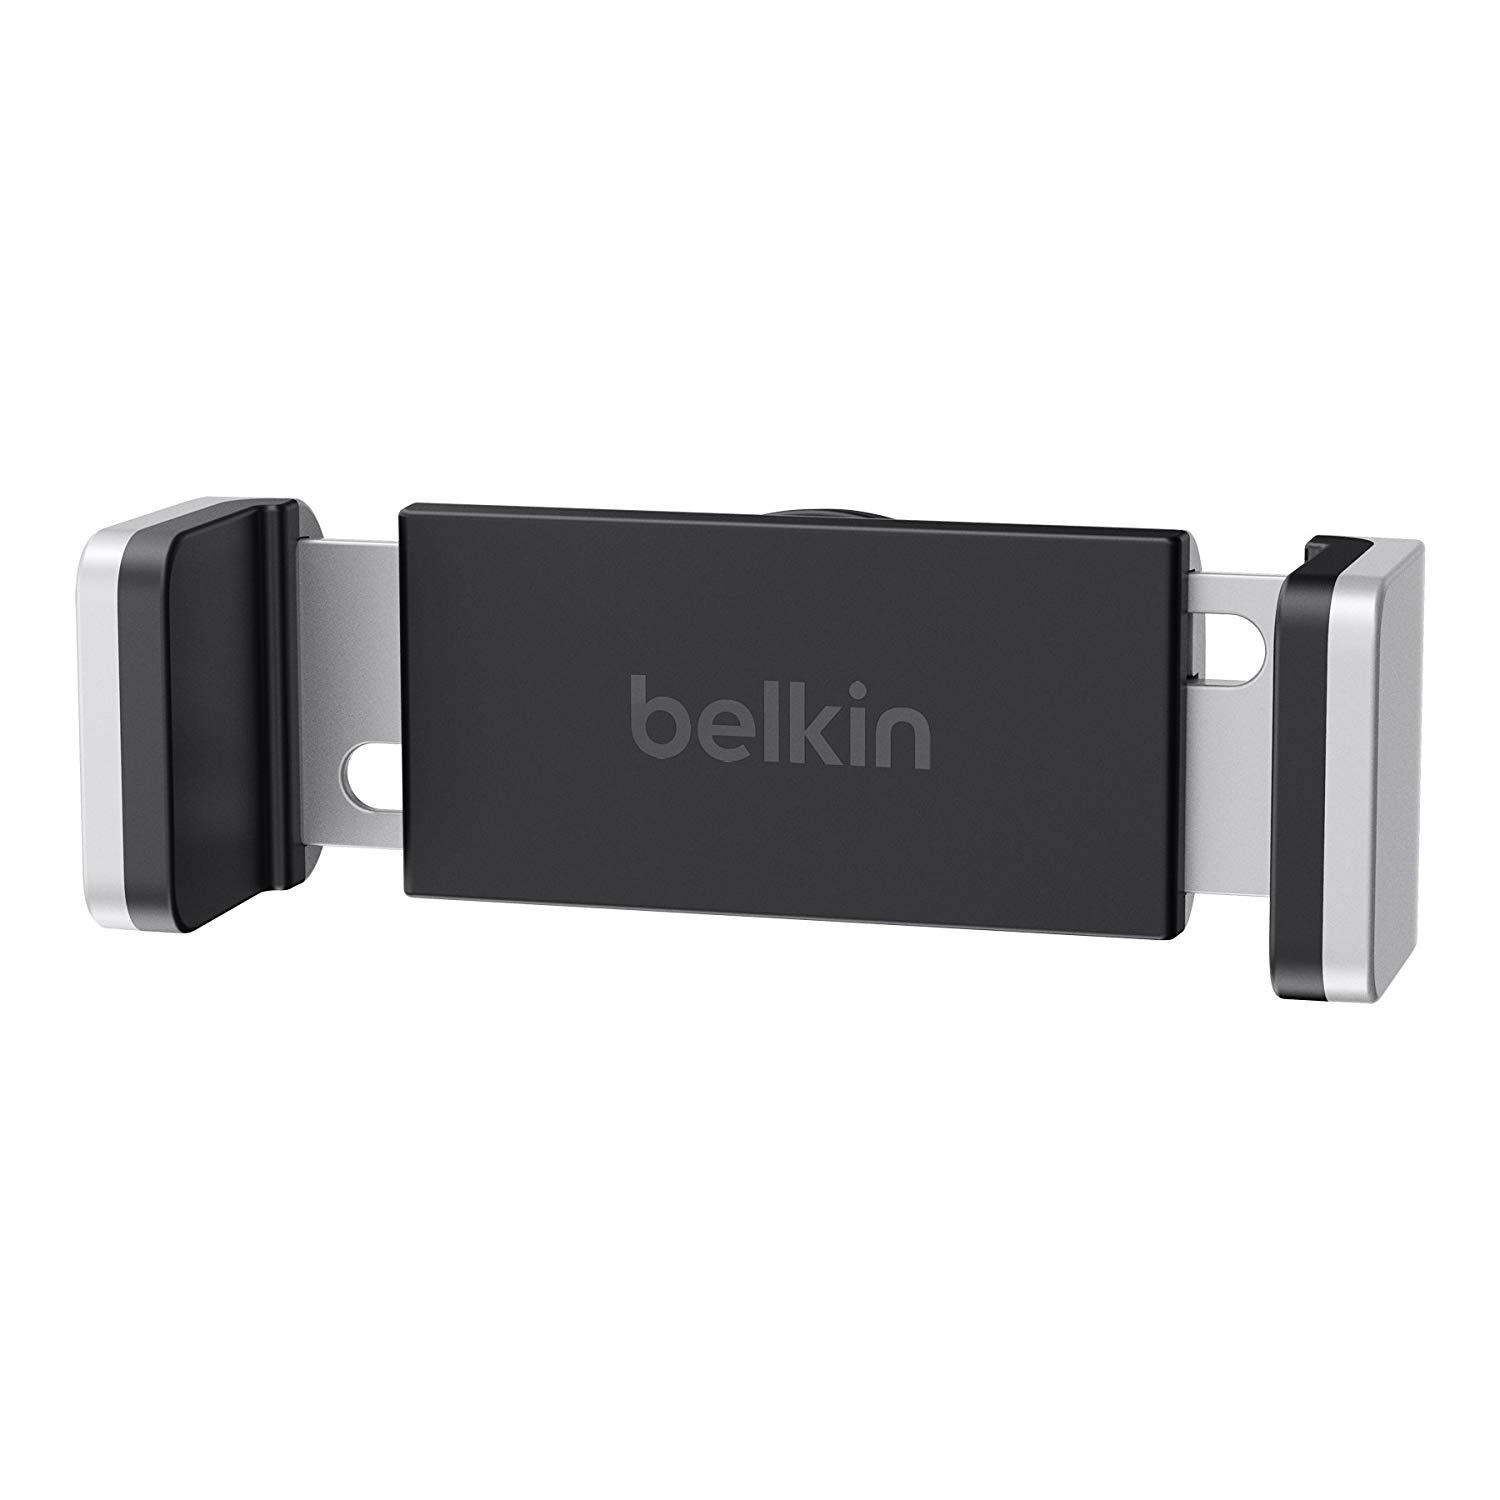 support telephone voiture belkin